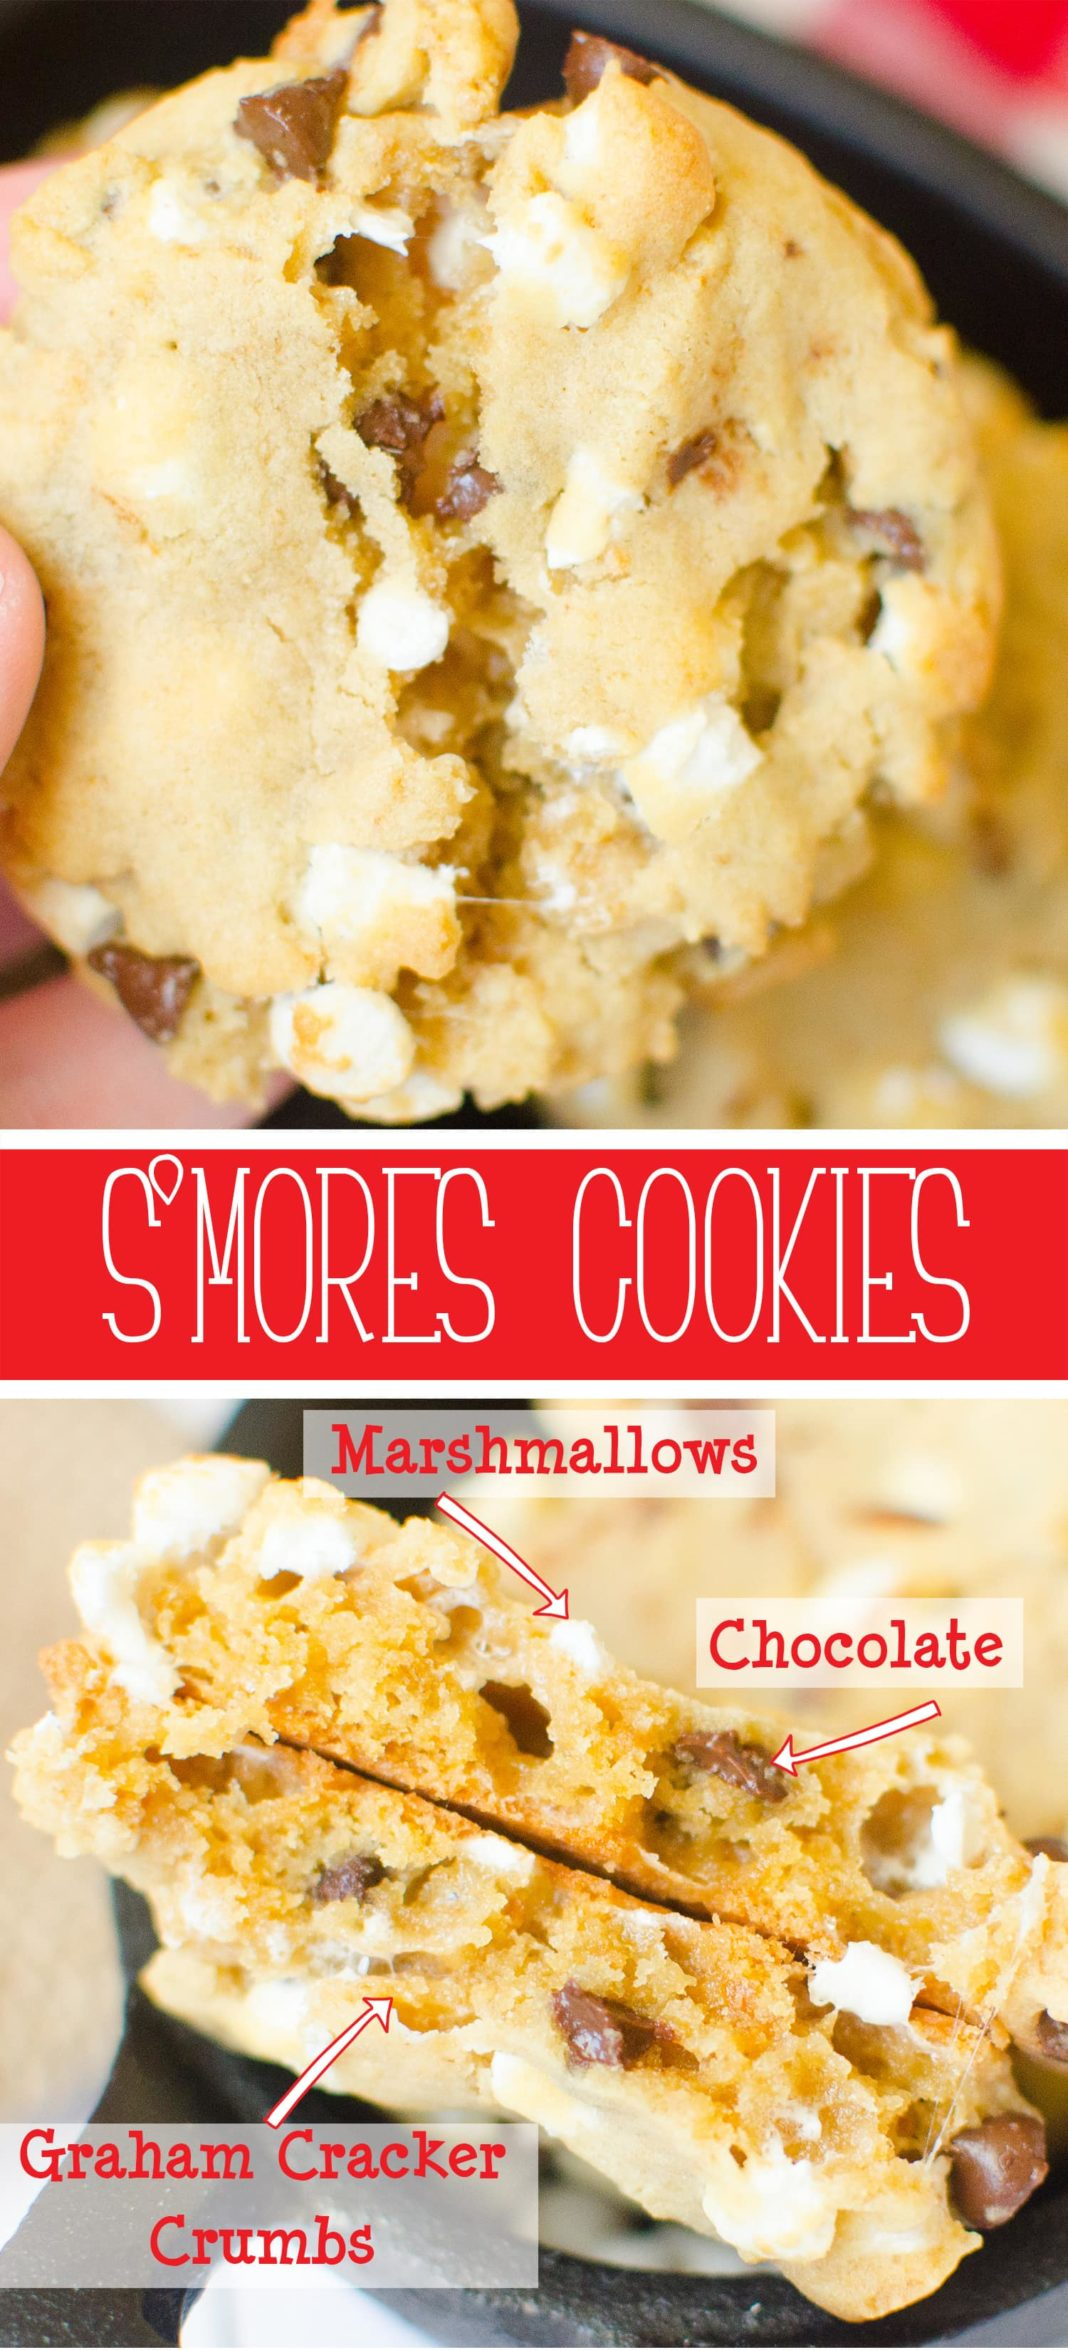 S'mores Cookies will take you right to the campfire! Graham Cracker crumbs, marshmallow bits, chocolate chips with just enough dough to hold it all together. You'll have S'mores right from your oven! #Cookie #recipe from Butter With A Side of Bread #smores #chocolate #marshmallow #campfire #dessert #food